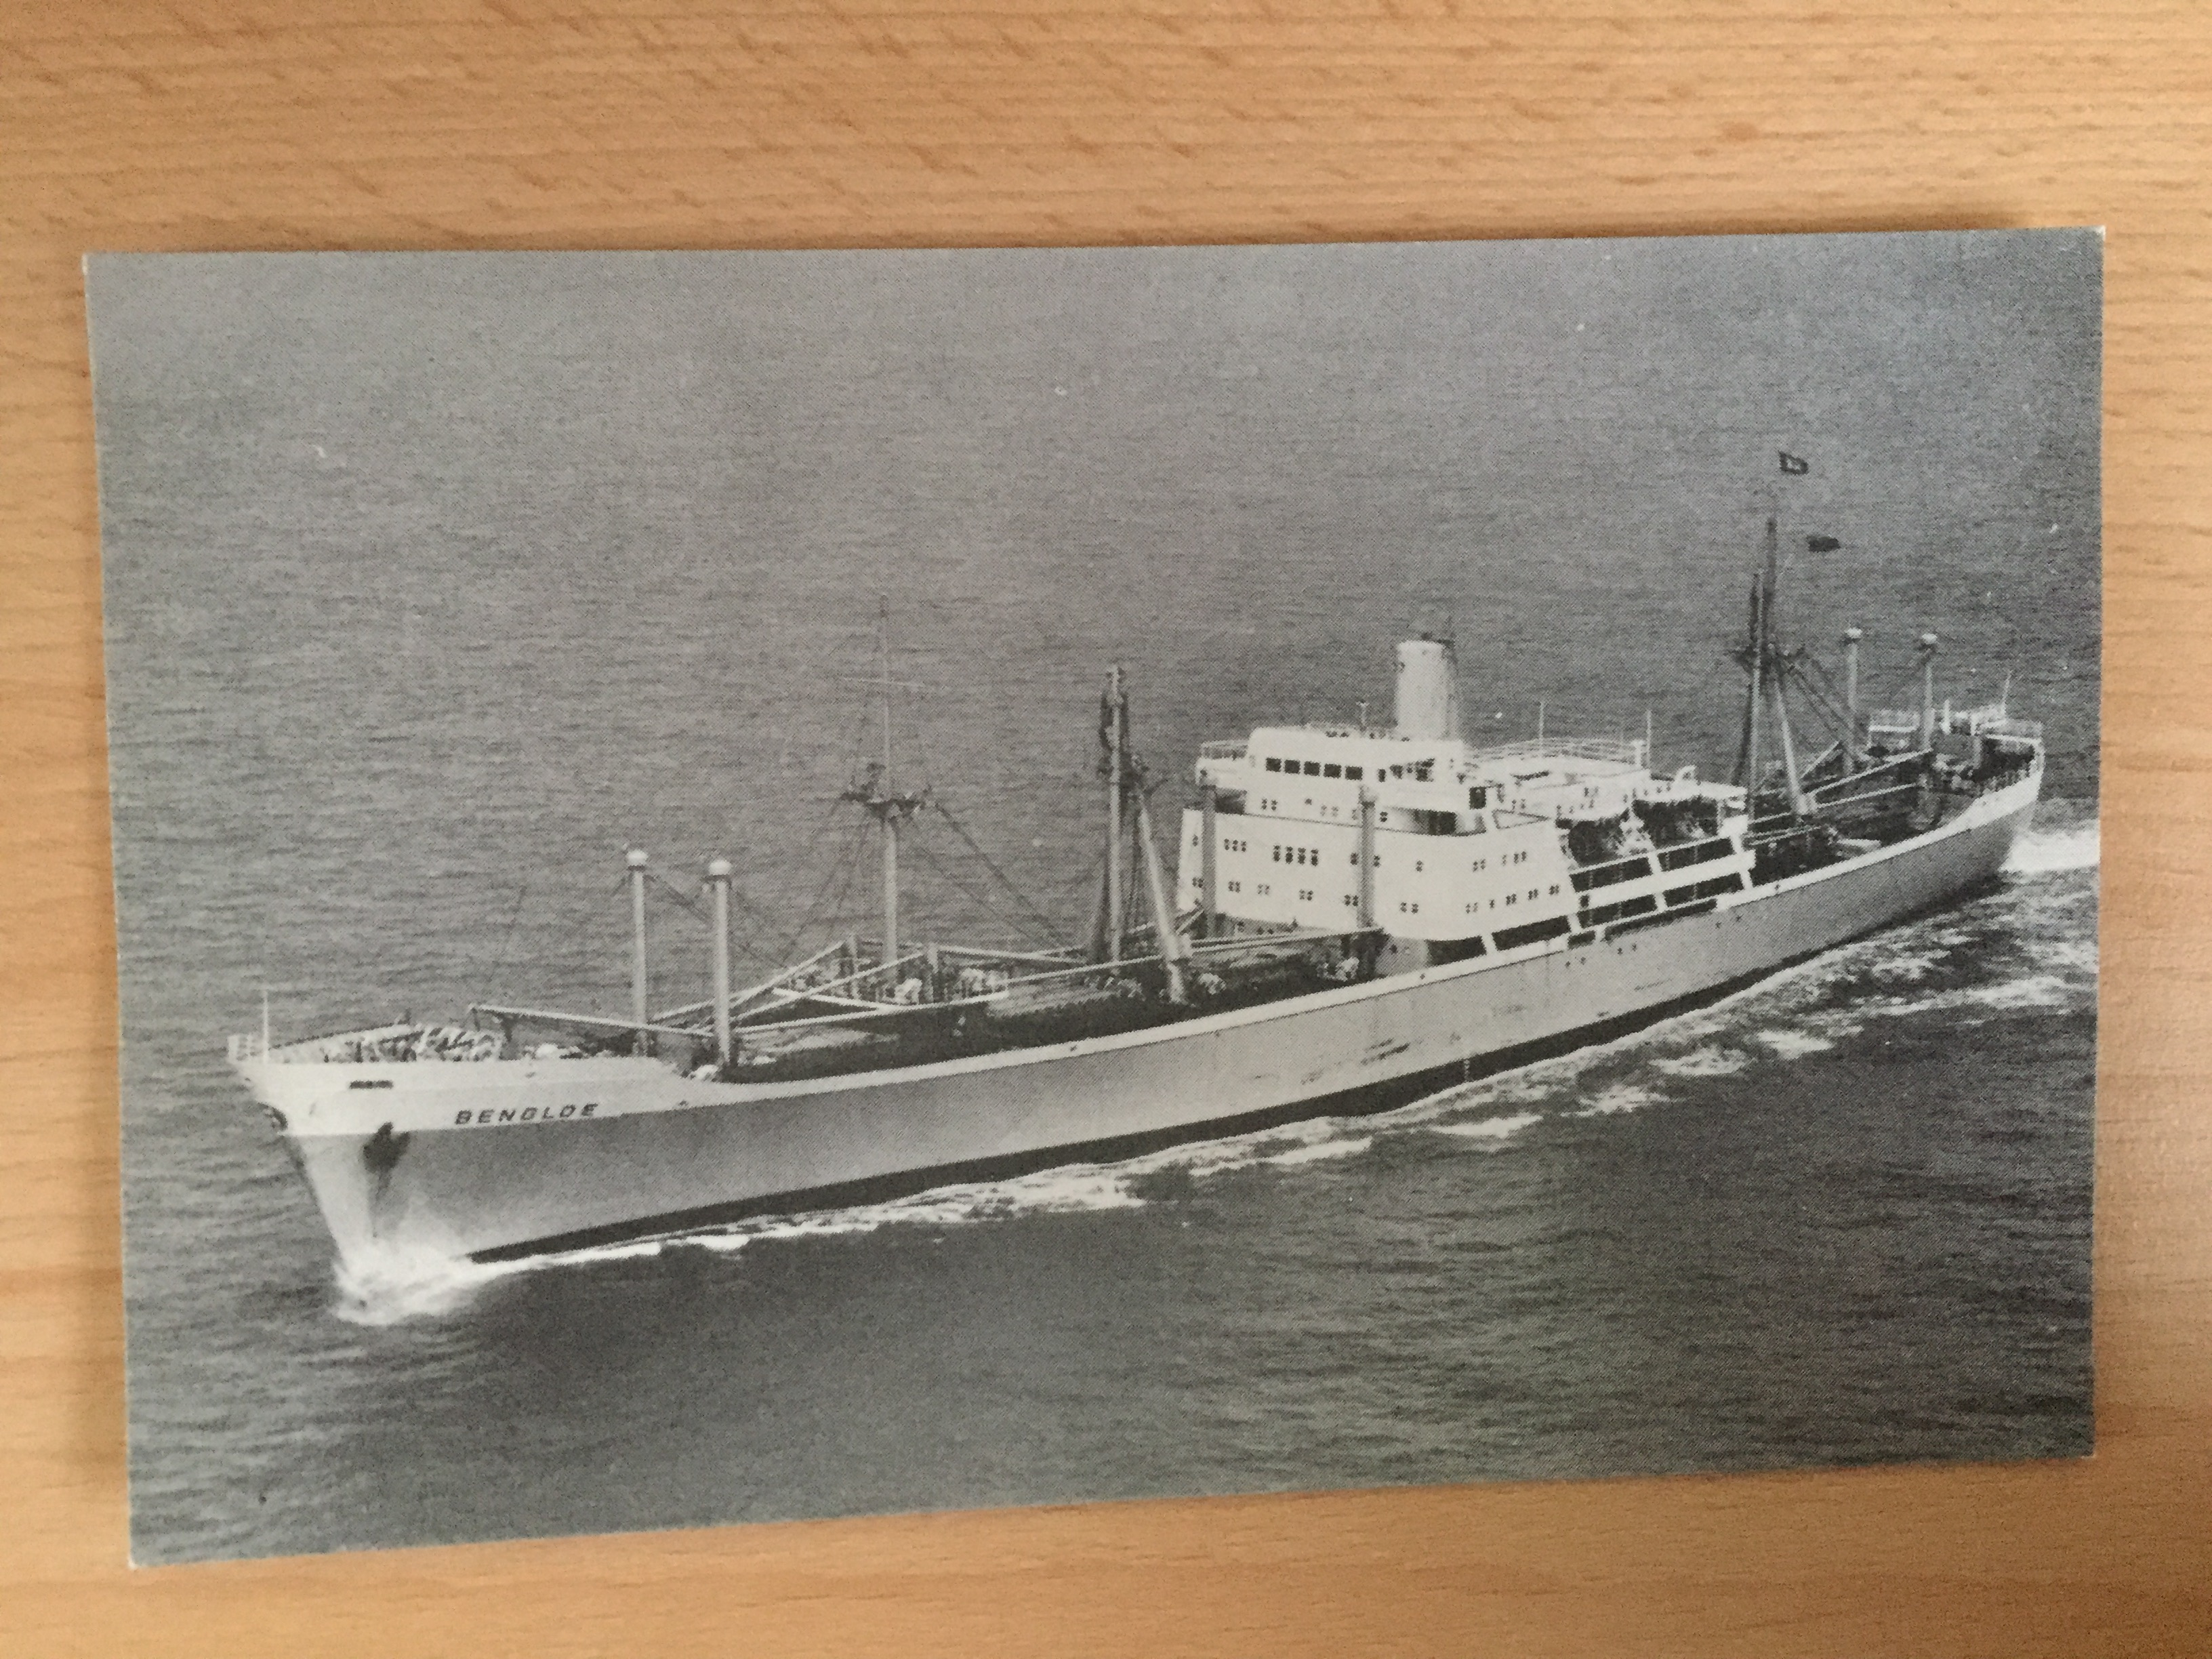 UNUSED B/W POSTCARD FROM THE VESSEL THE BENGLOE FROM THE BEN LINE